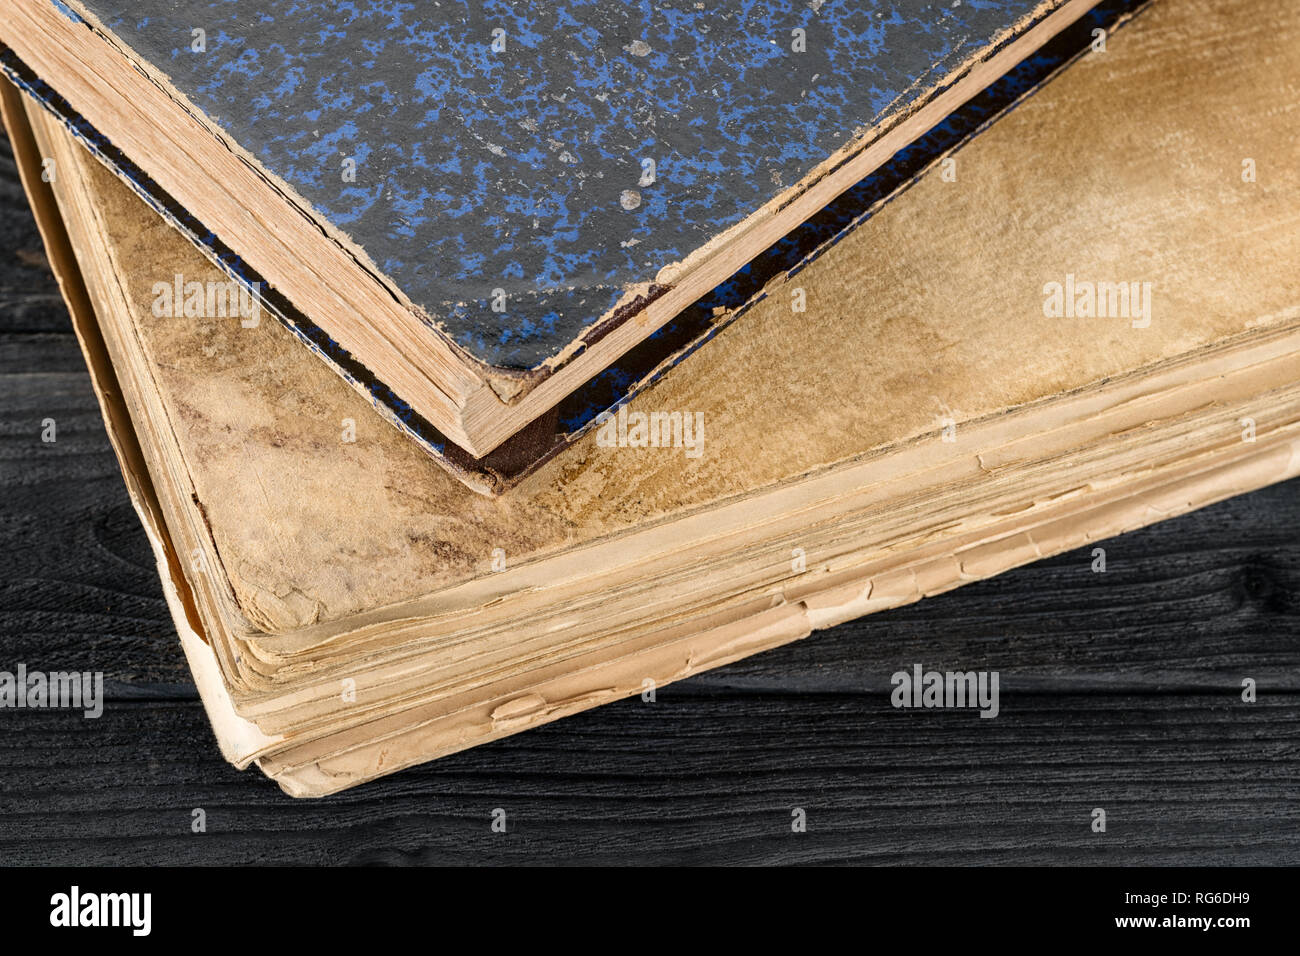 Two old books on the wooden table close up. literature, history, Knowledge and wisdom theme still life - Stock Image